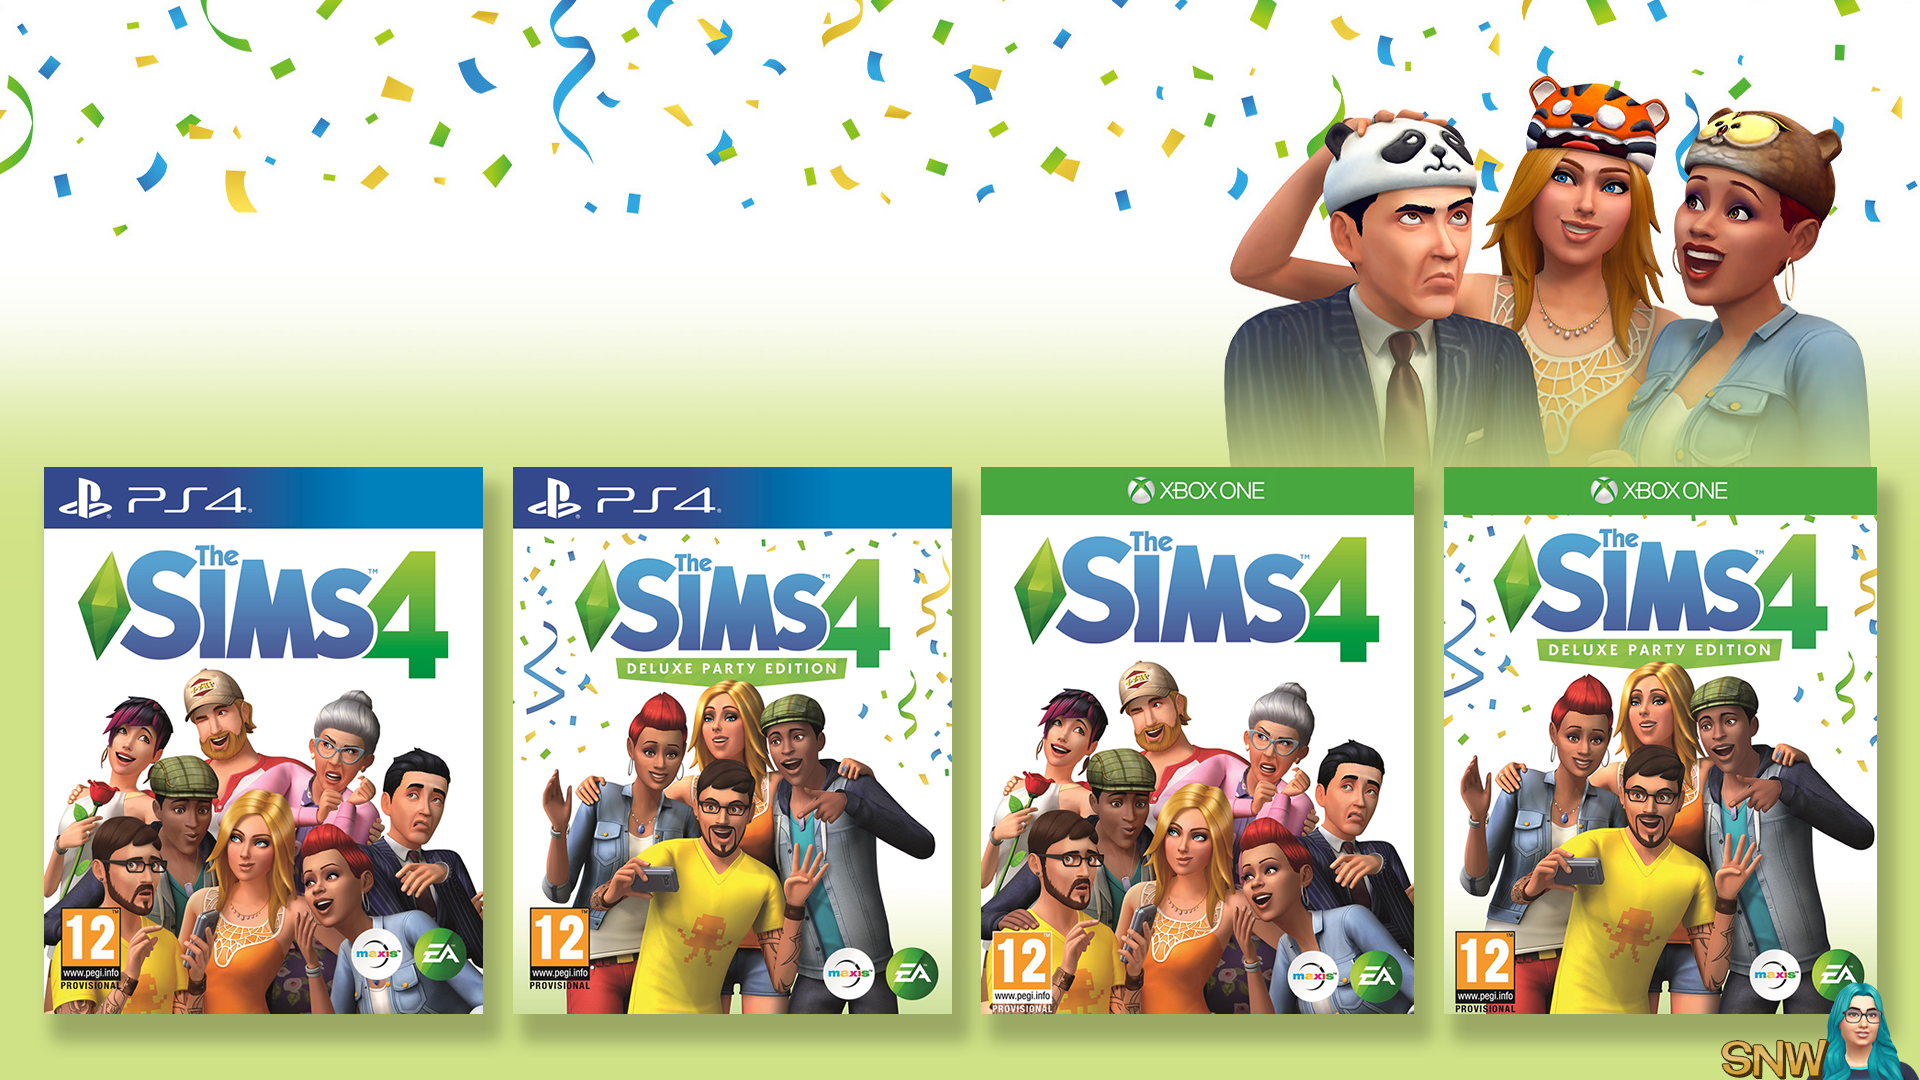 The Sims 4 on consoles PS4 Xbox One press release